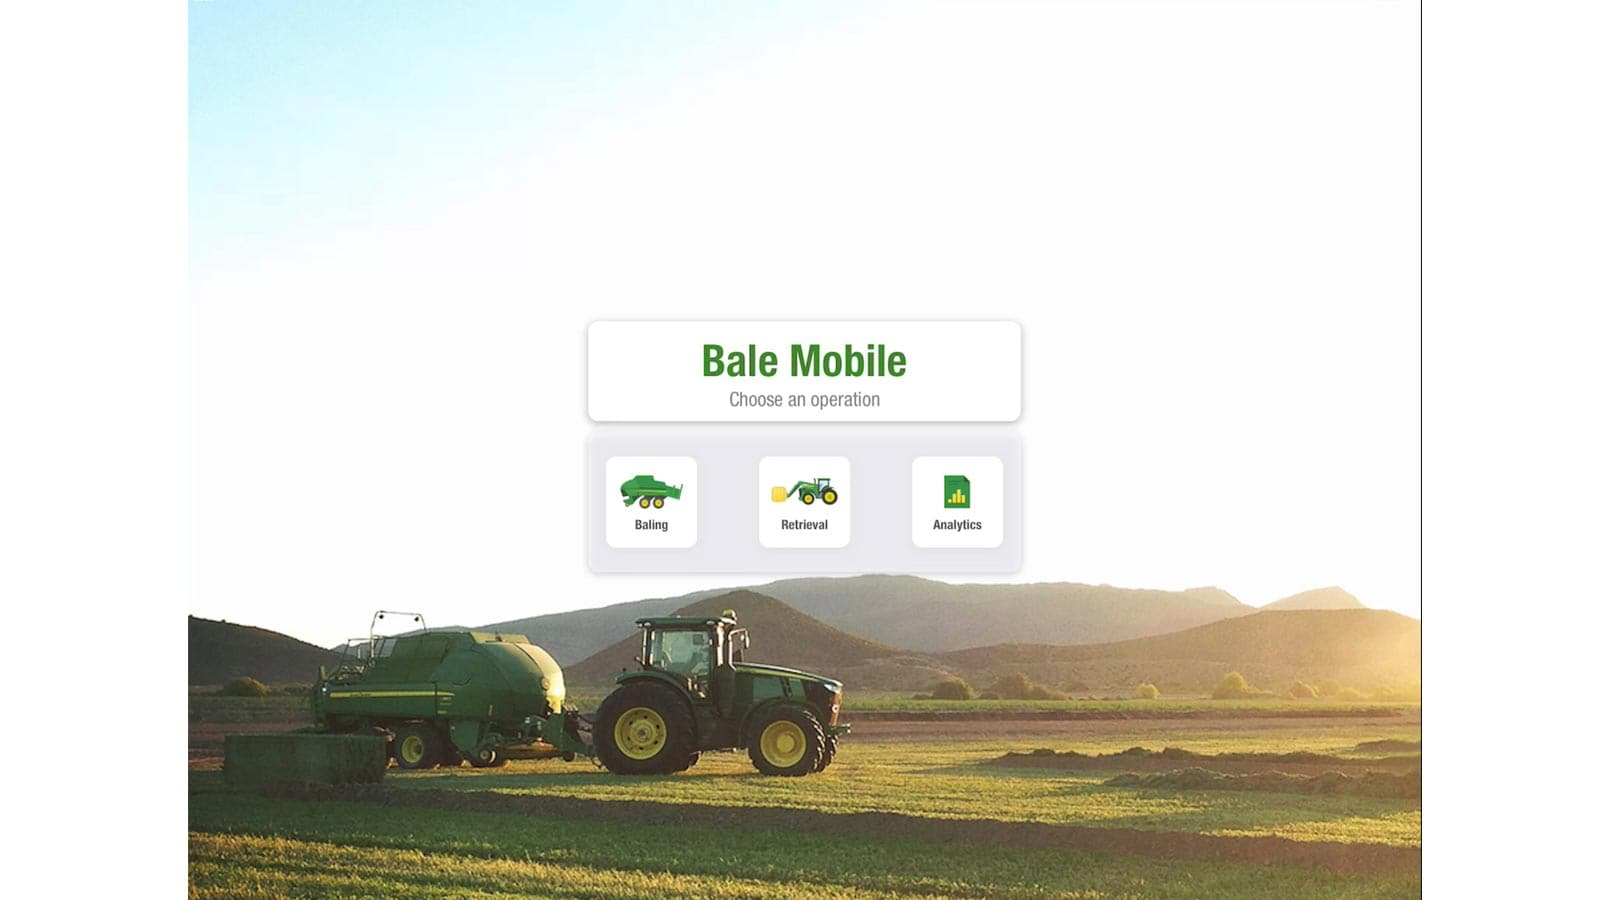 The startup window for the Bale Mobile App